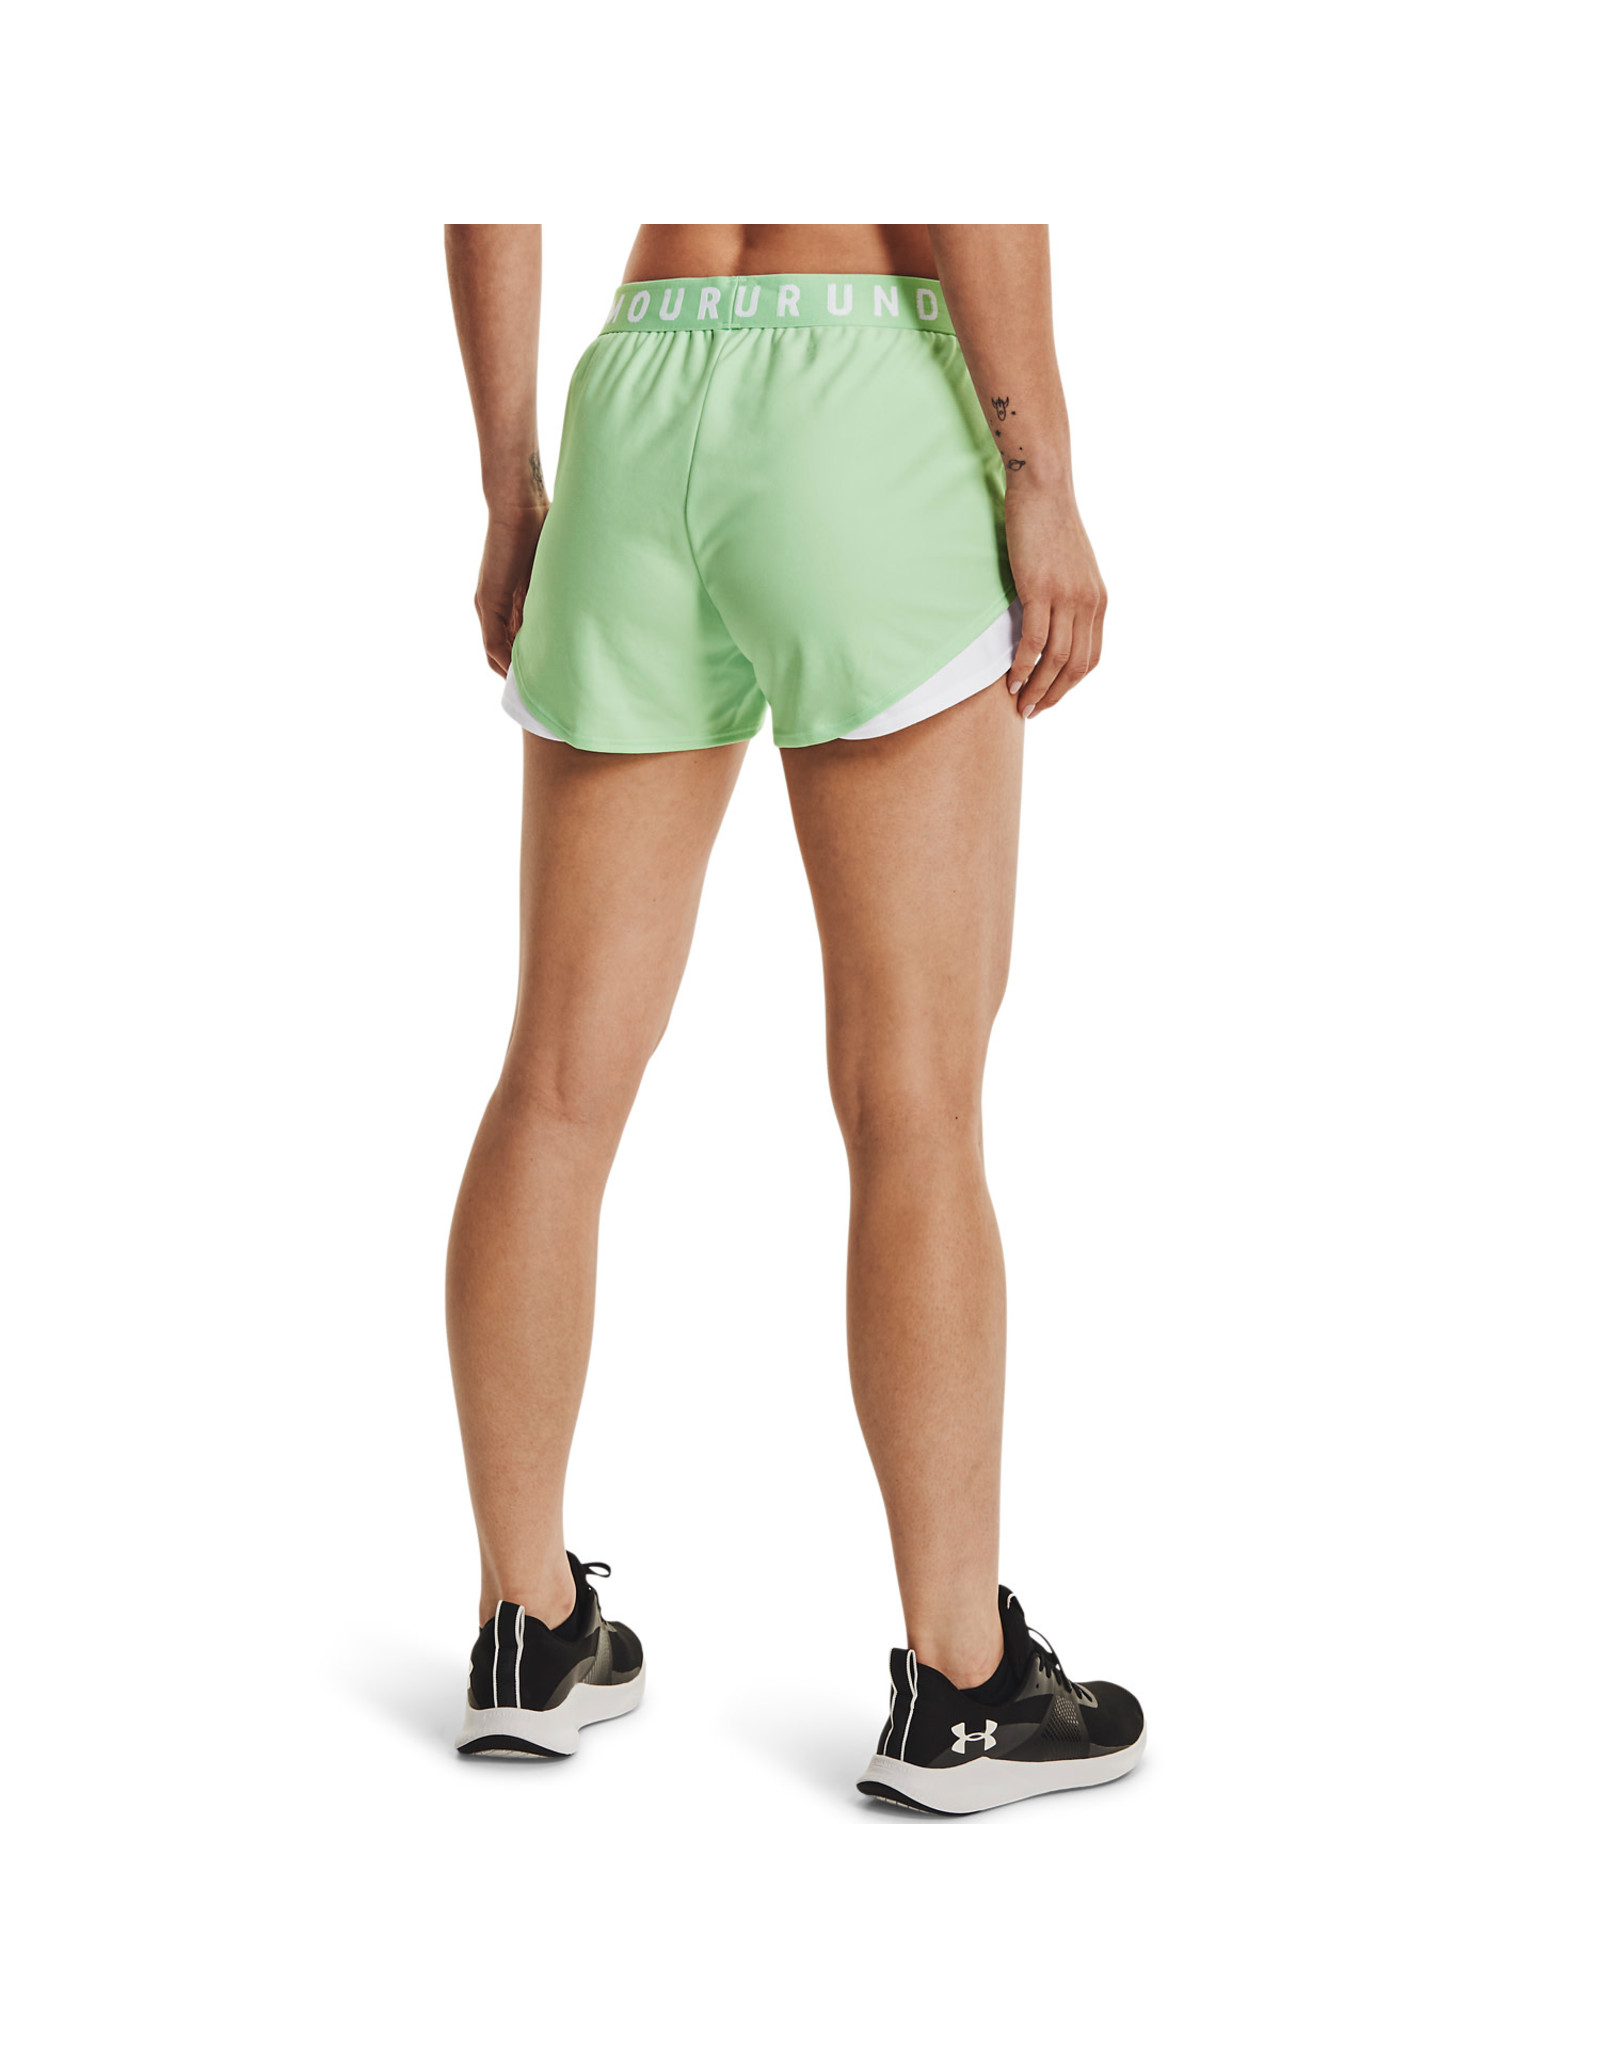 Under Armour Play Up Shorts 3.0-Green